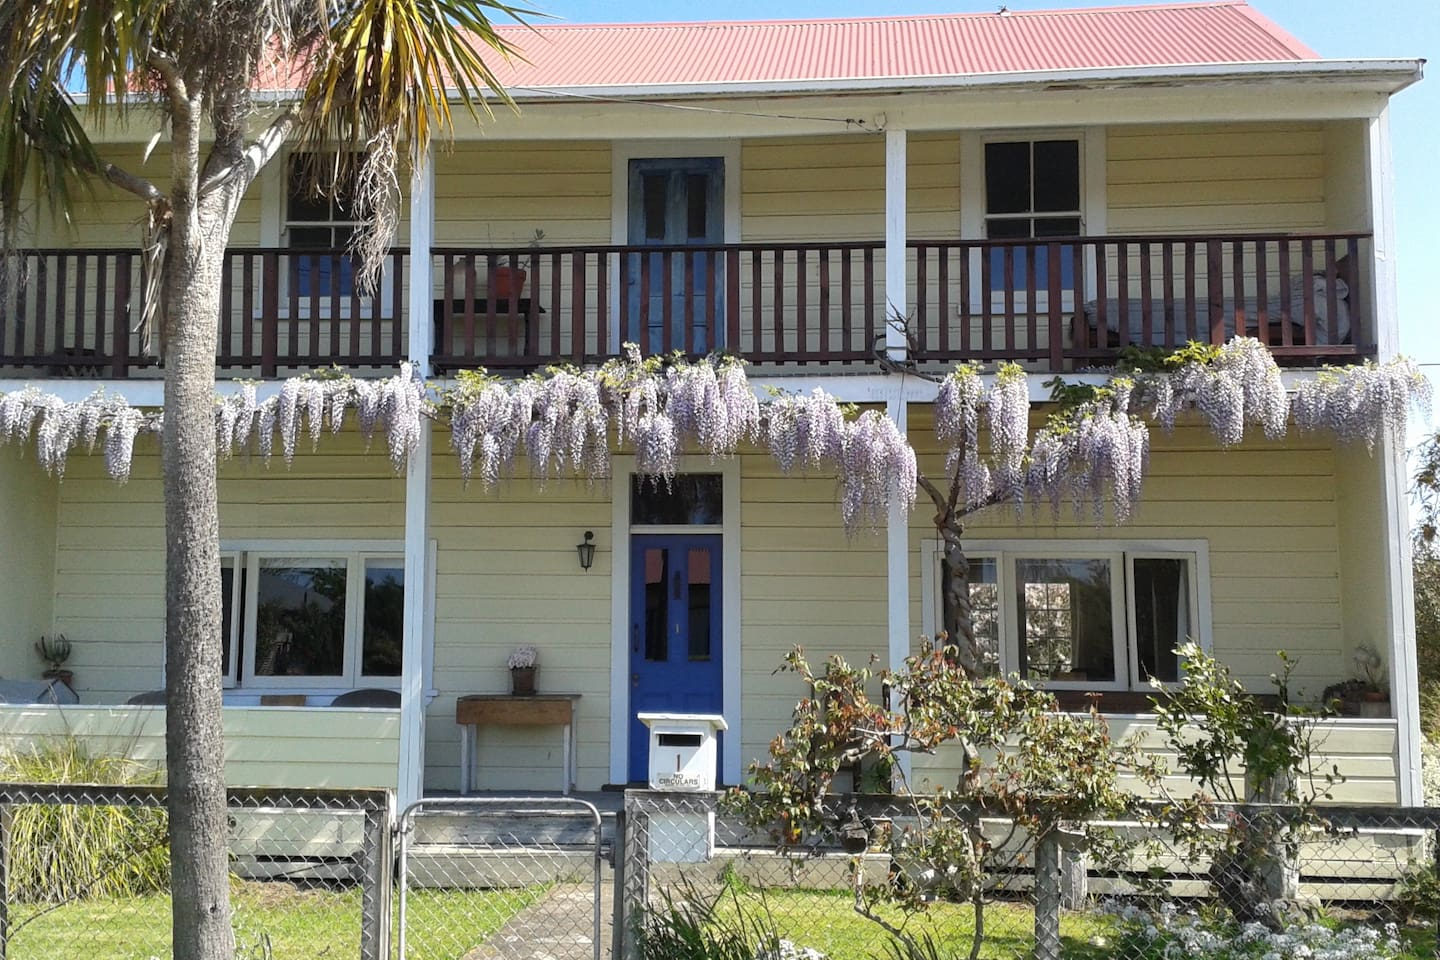 Front of house with wysteria in full-bloom